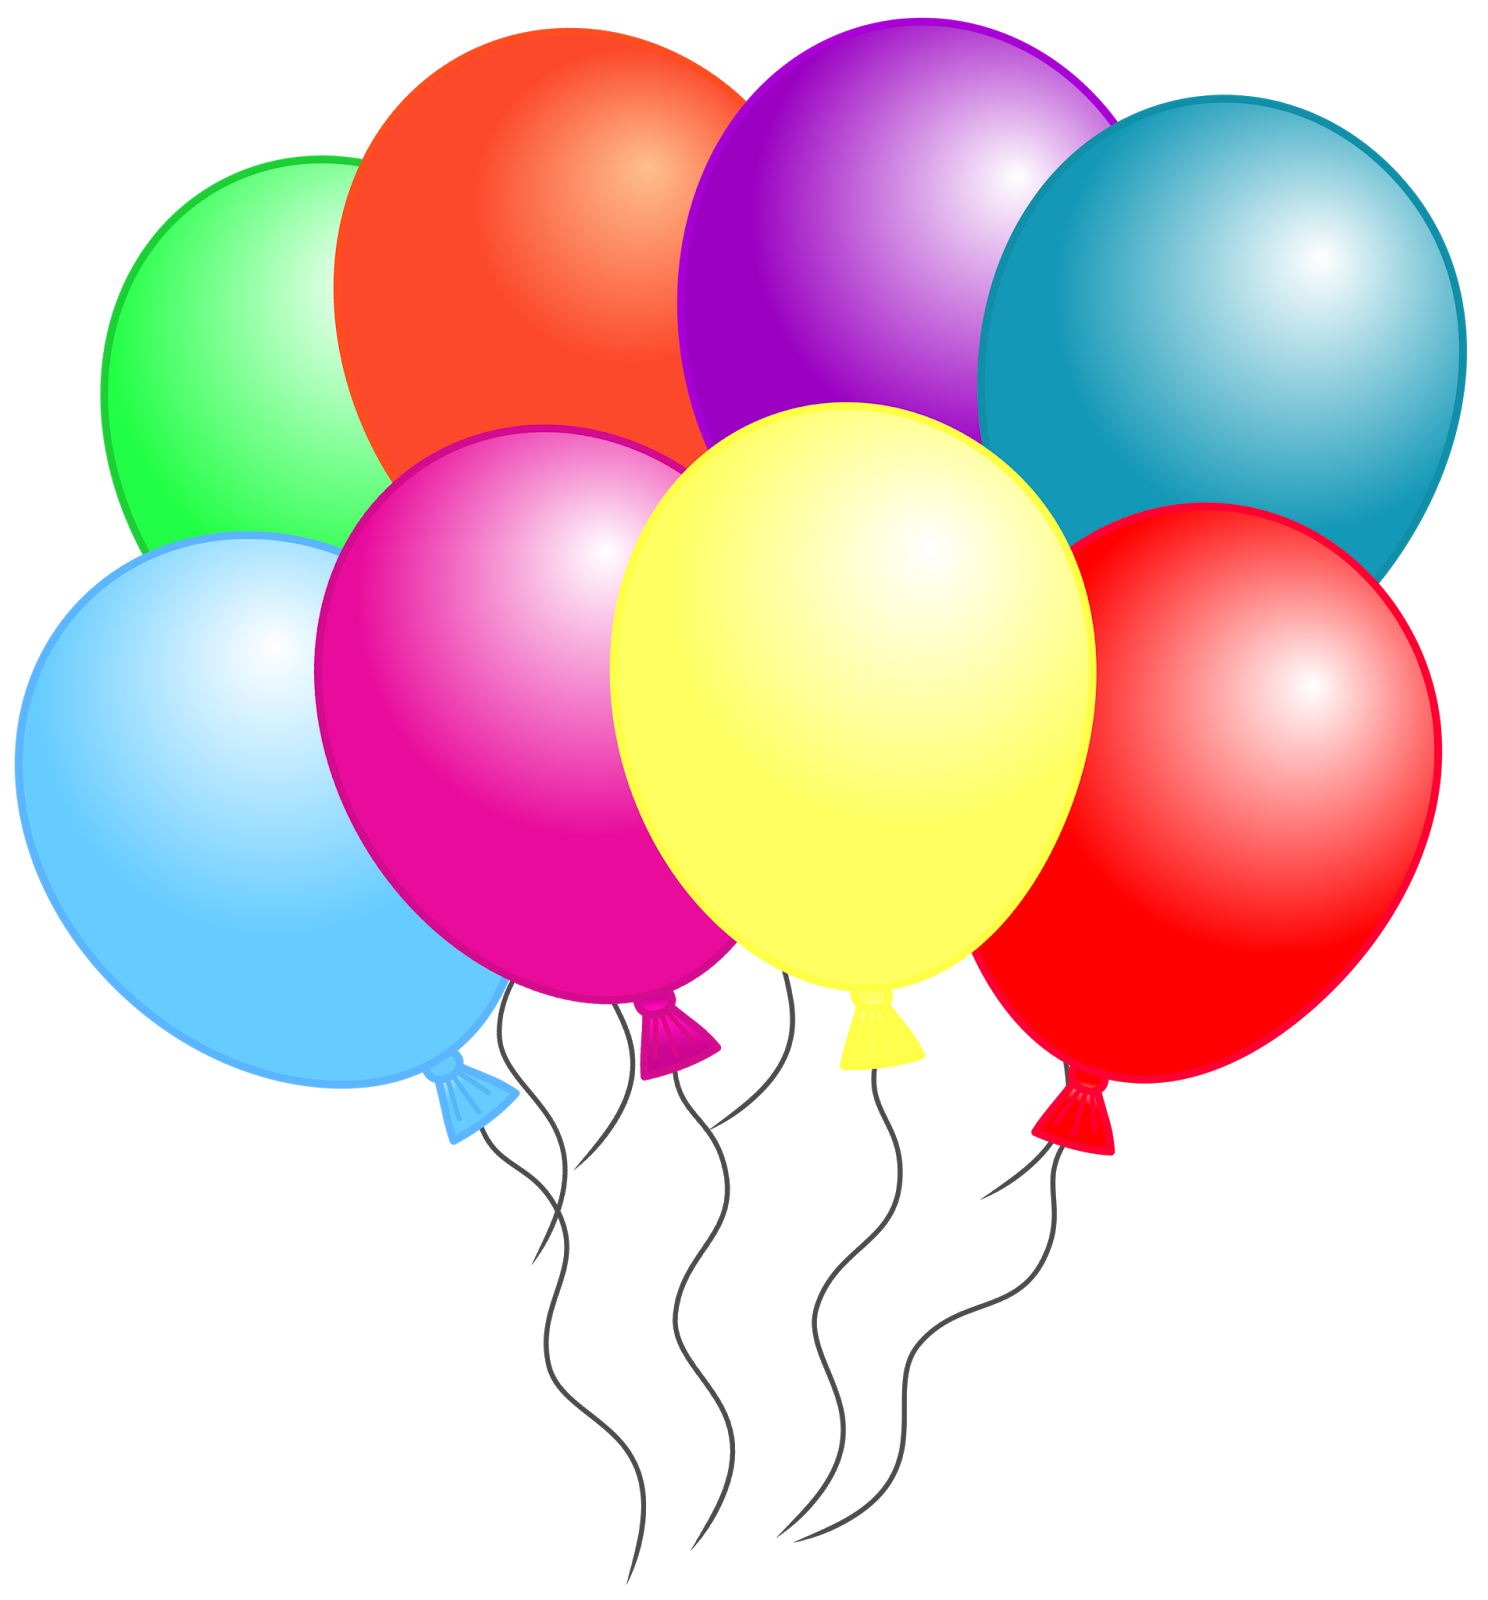 balloon clipart that can be downloaded individually and used alone rh pinterest co uk balloon clip art free balloon clip art images